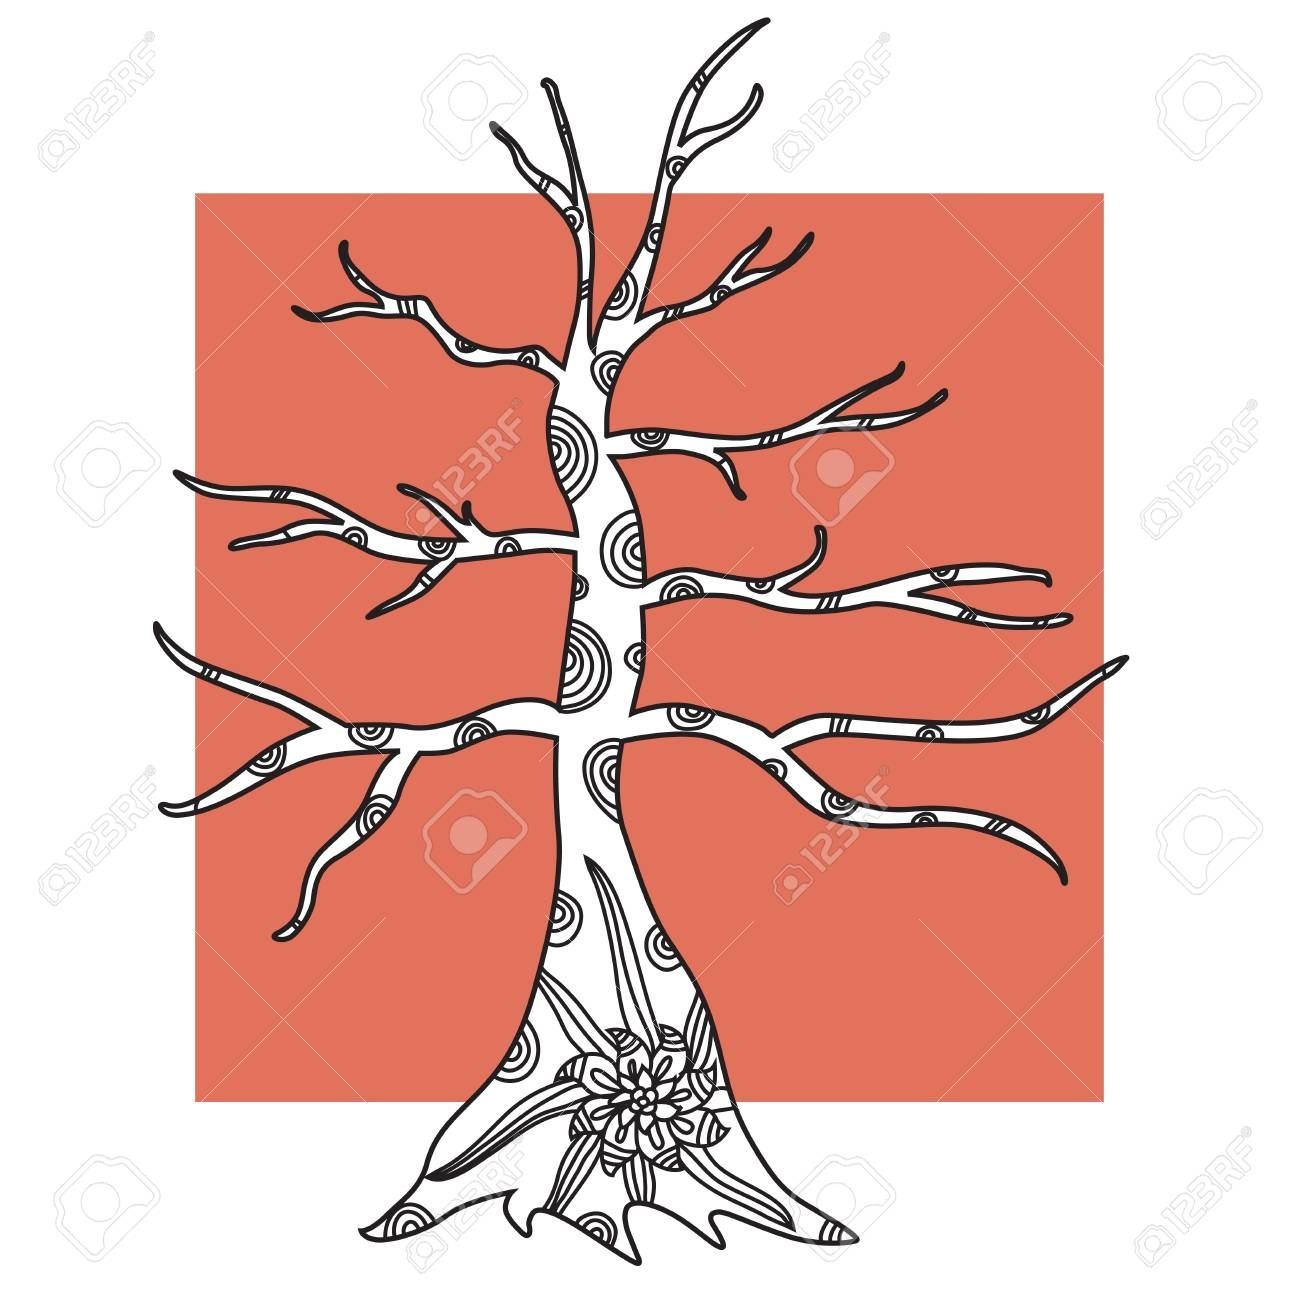 hand drawn decorative tree for your design Stock Vector - 22160079